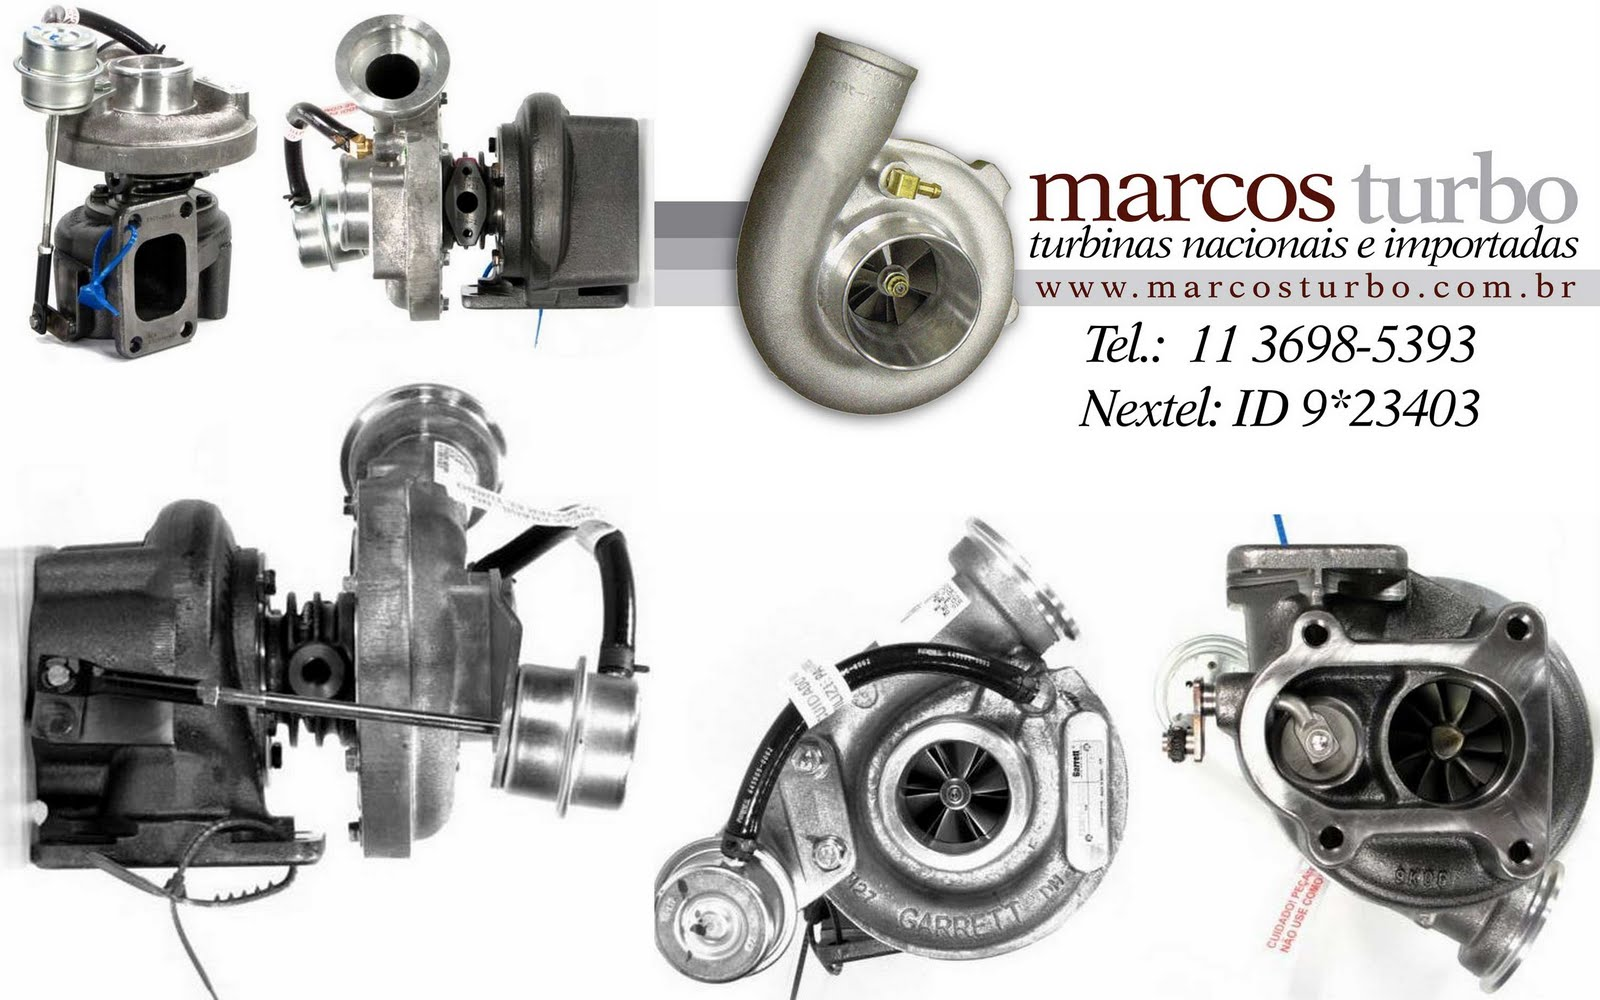 Marcos Turbo Turbinas Turbos Rcosturbo